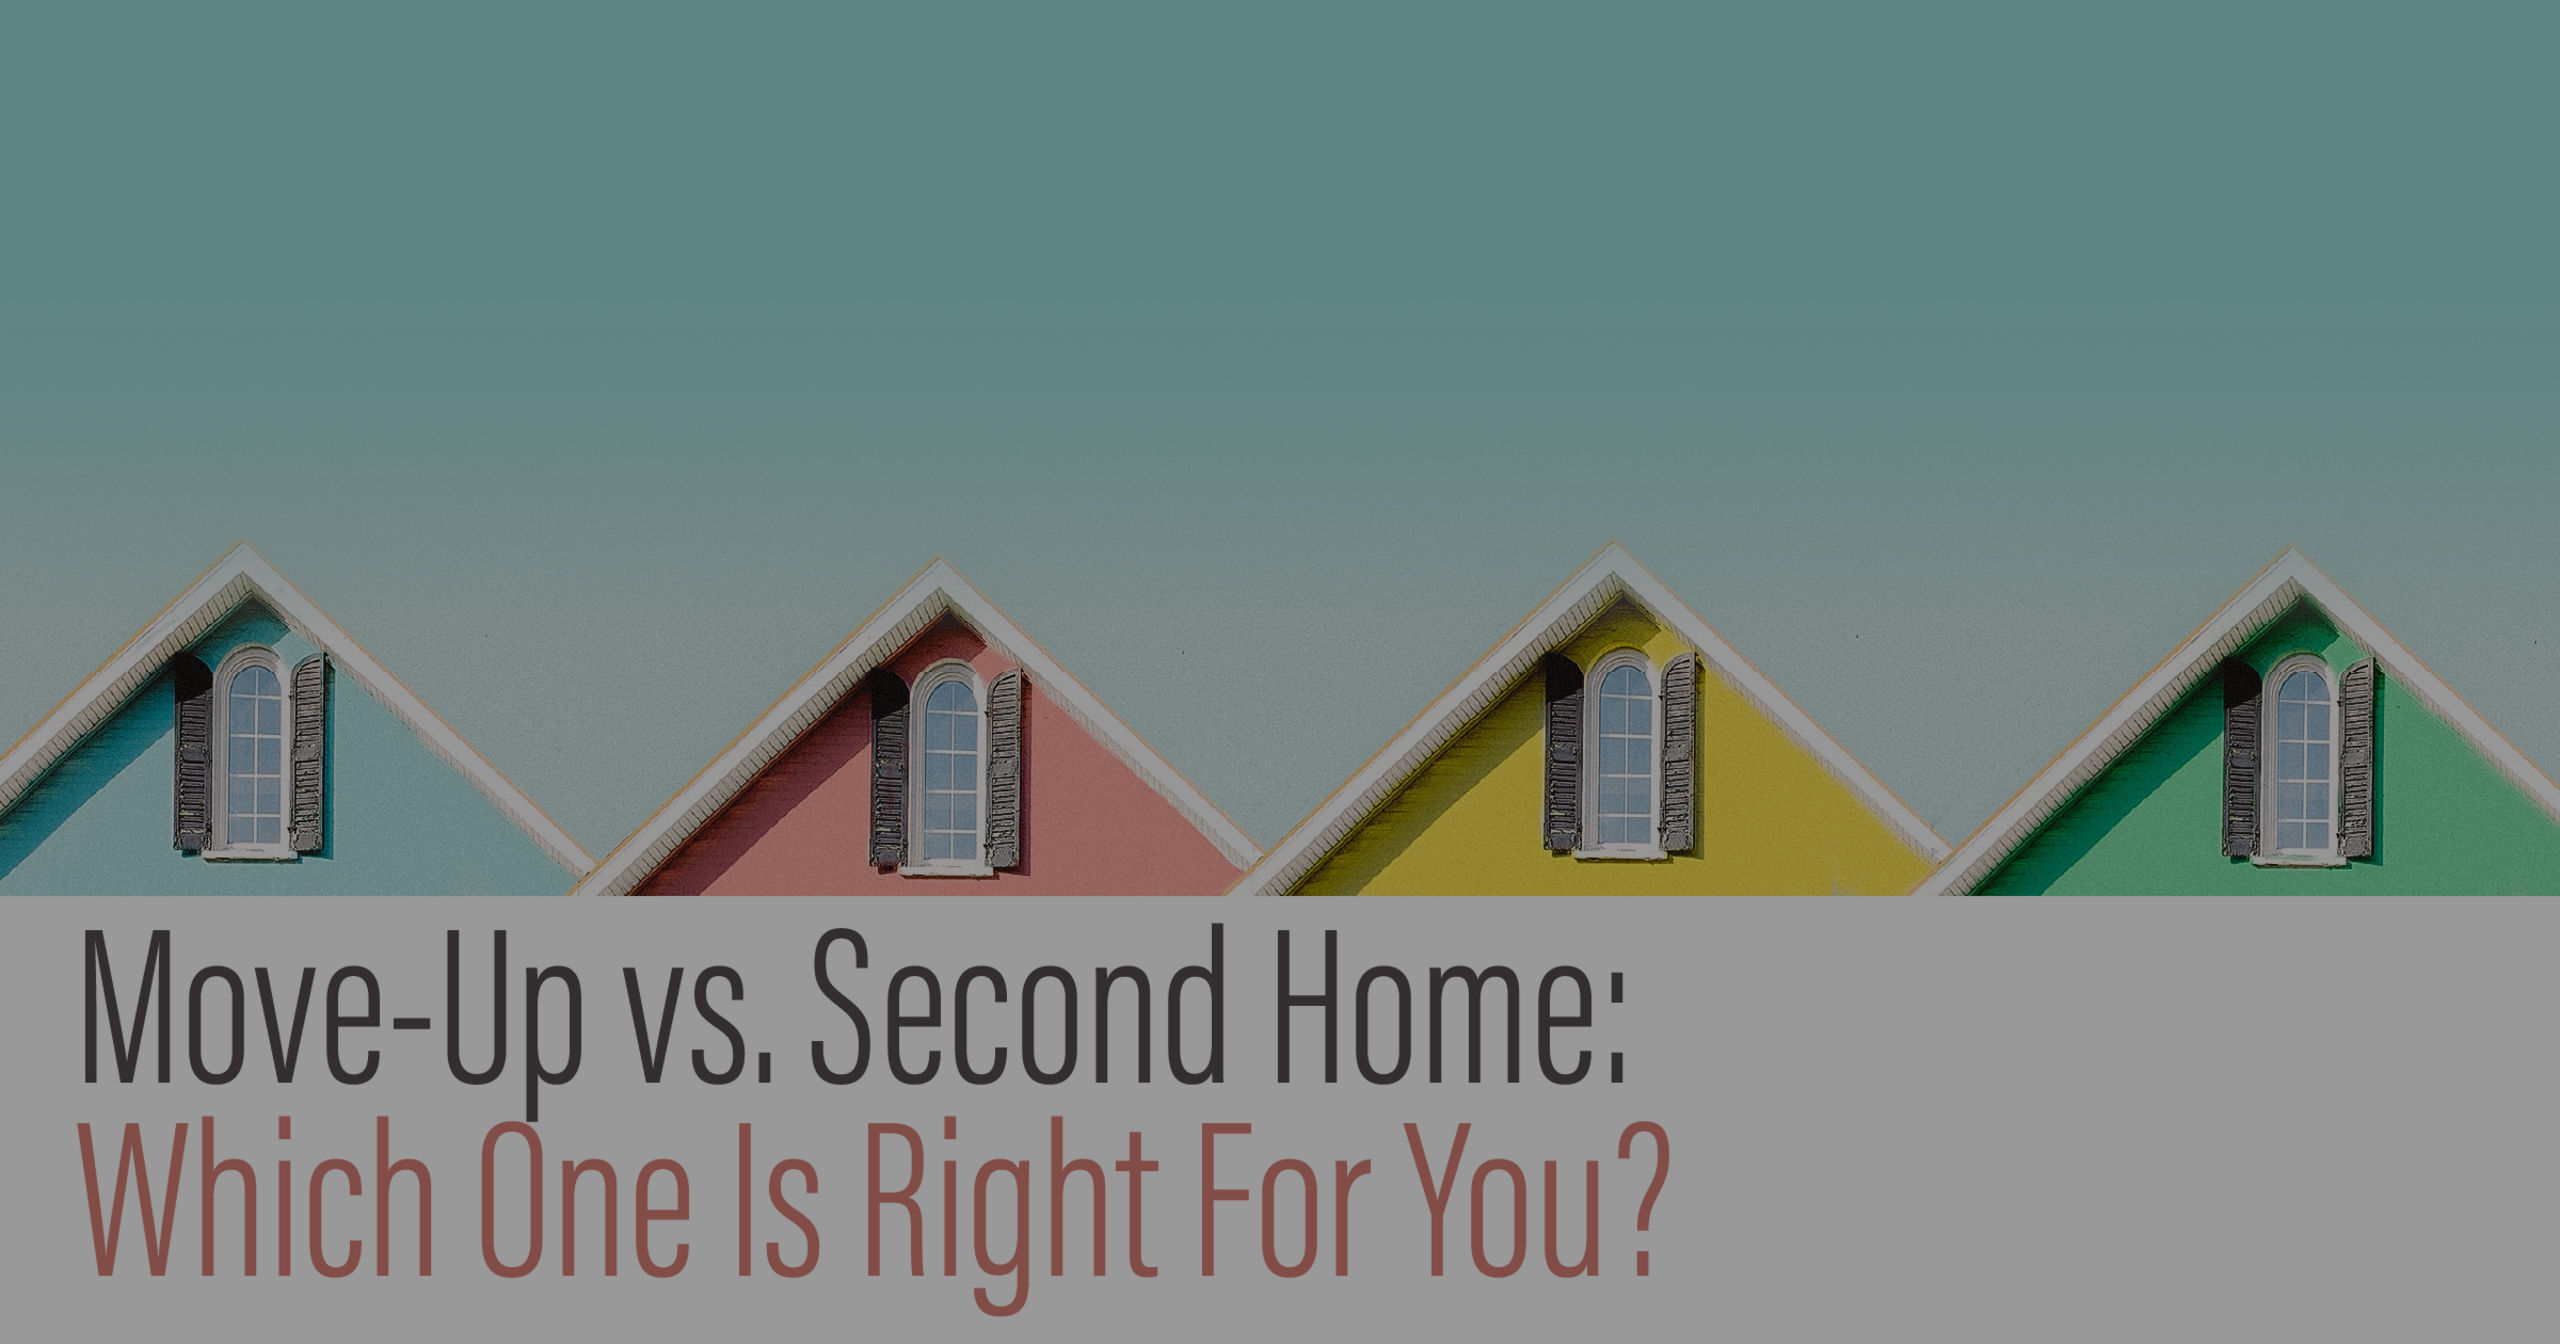 Move-up vs Second Home